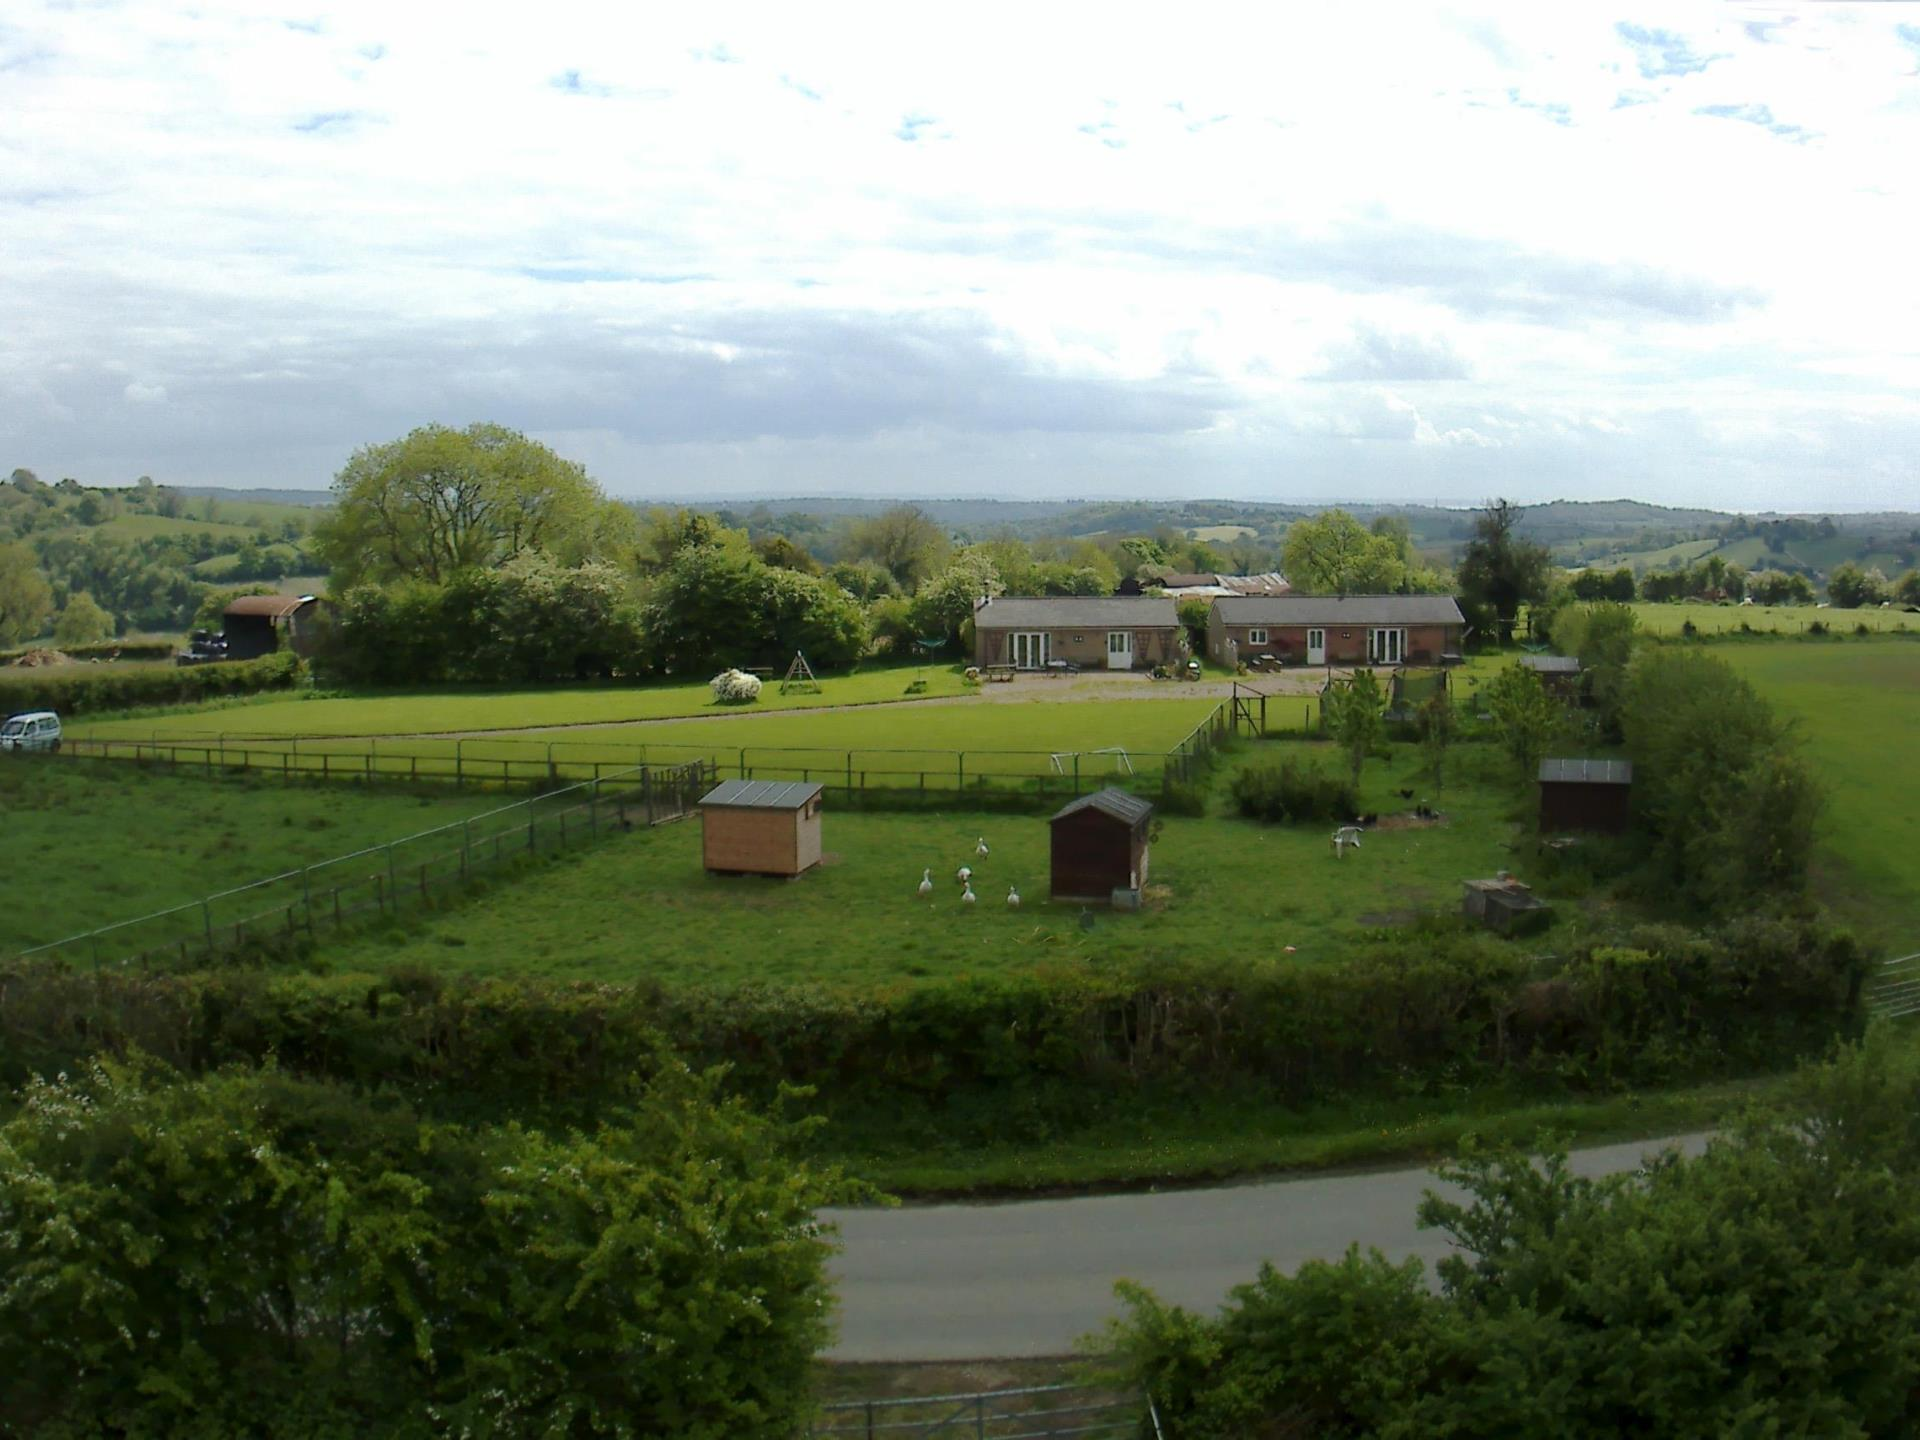 Aerial view of Blackthorn Meadow